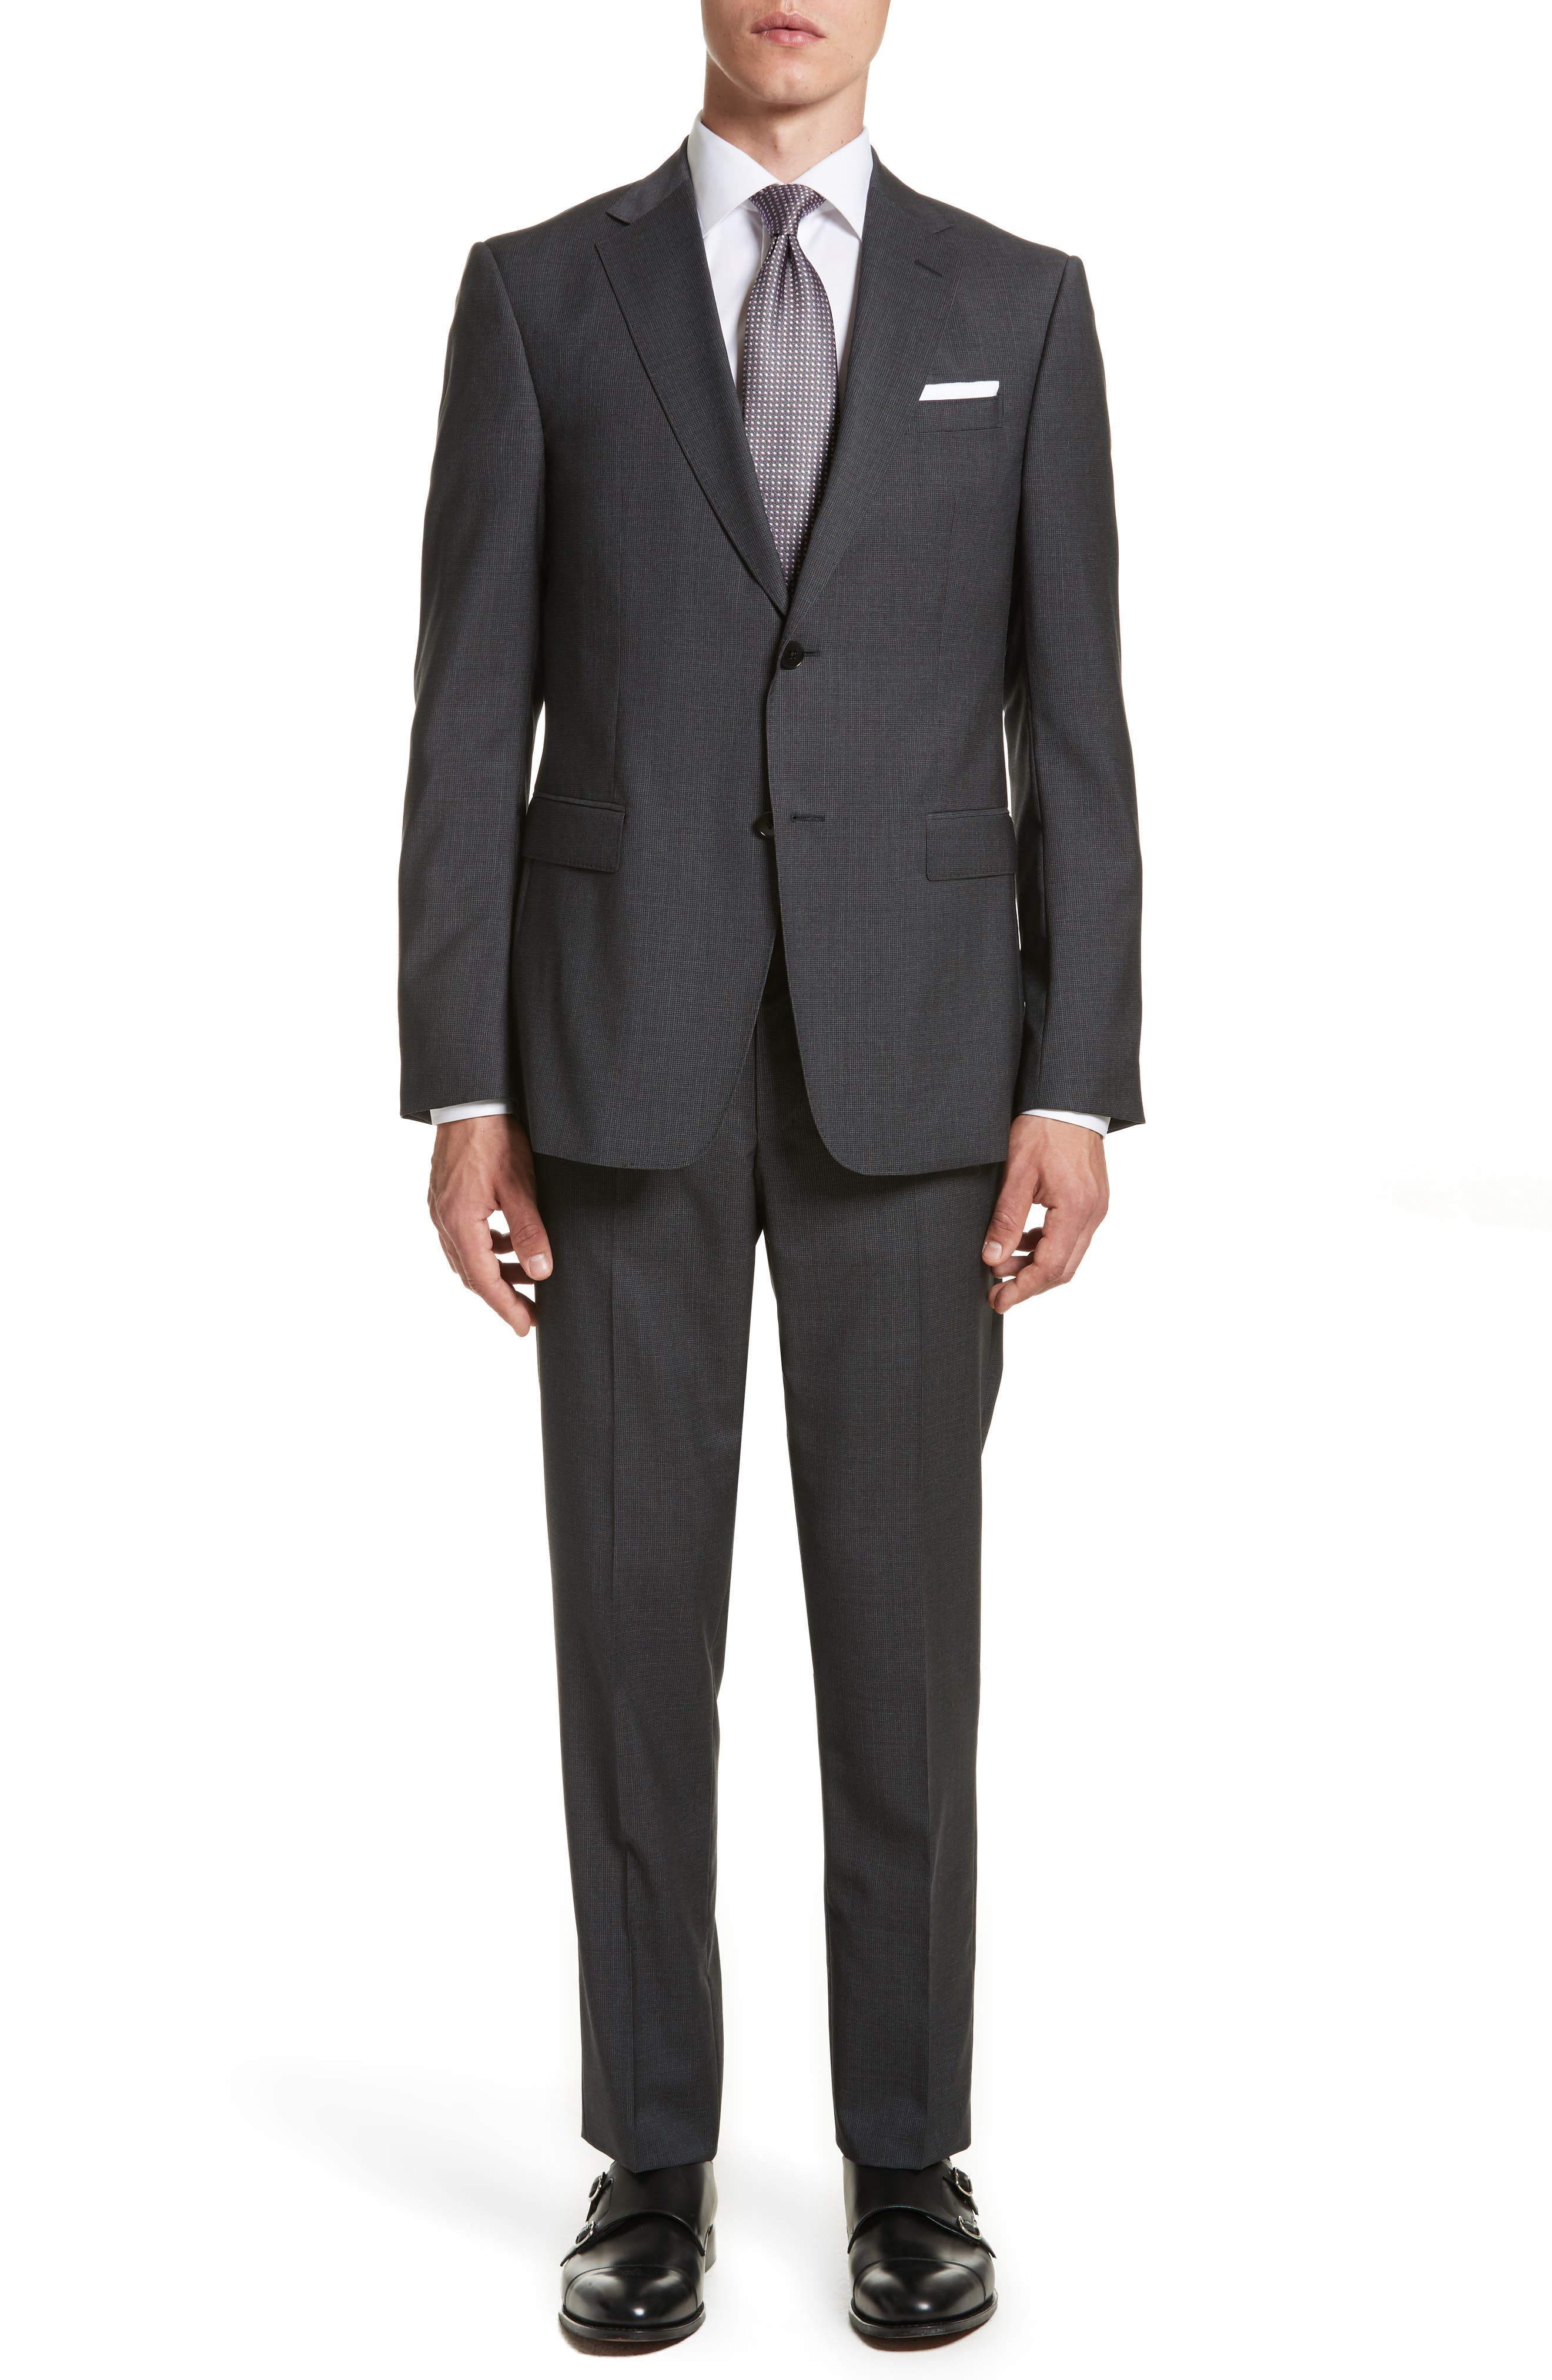 Alternate Image 1 Selected - Z Zegna Classic Fit Solid Wool Suit